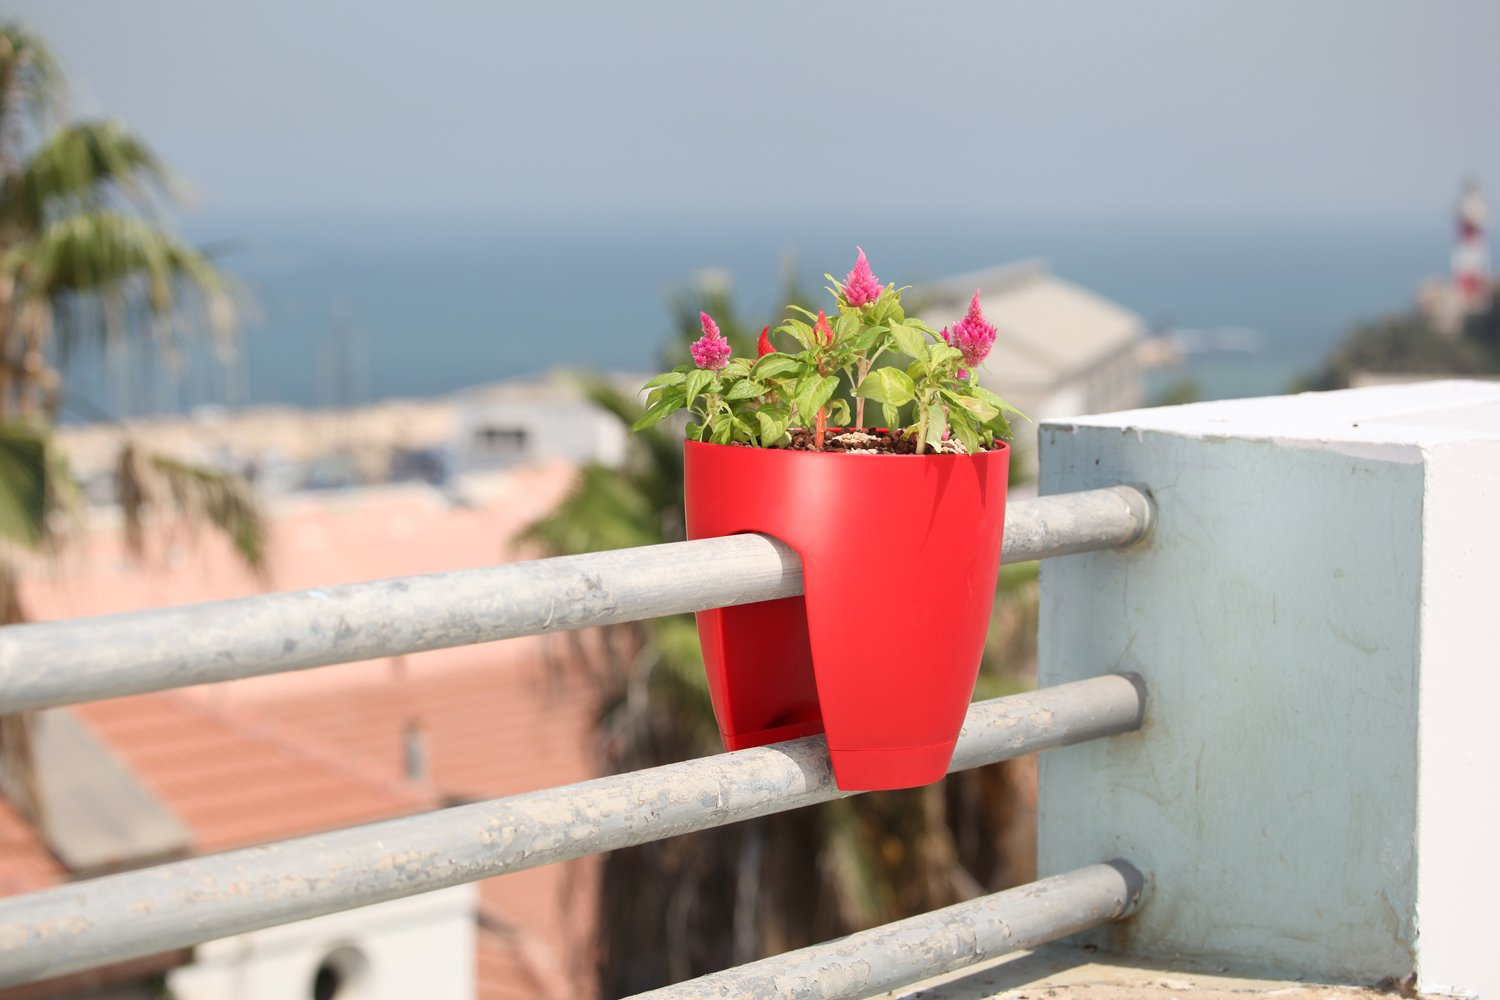 Greenbo Deck Rail Planter Box with Drainage trays, round 12-Inch, Color Red- Set of 2 by Greenbo (Image #3)